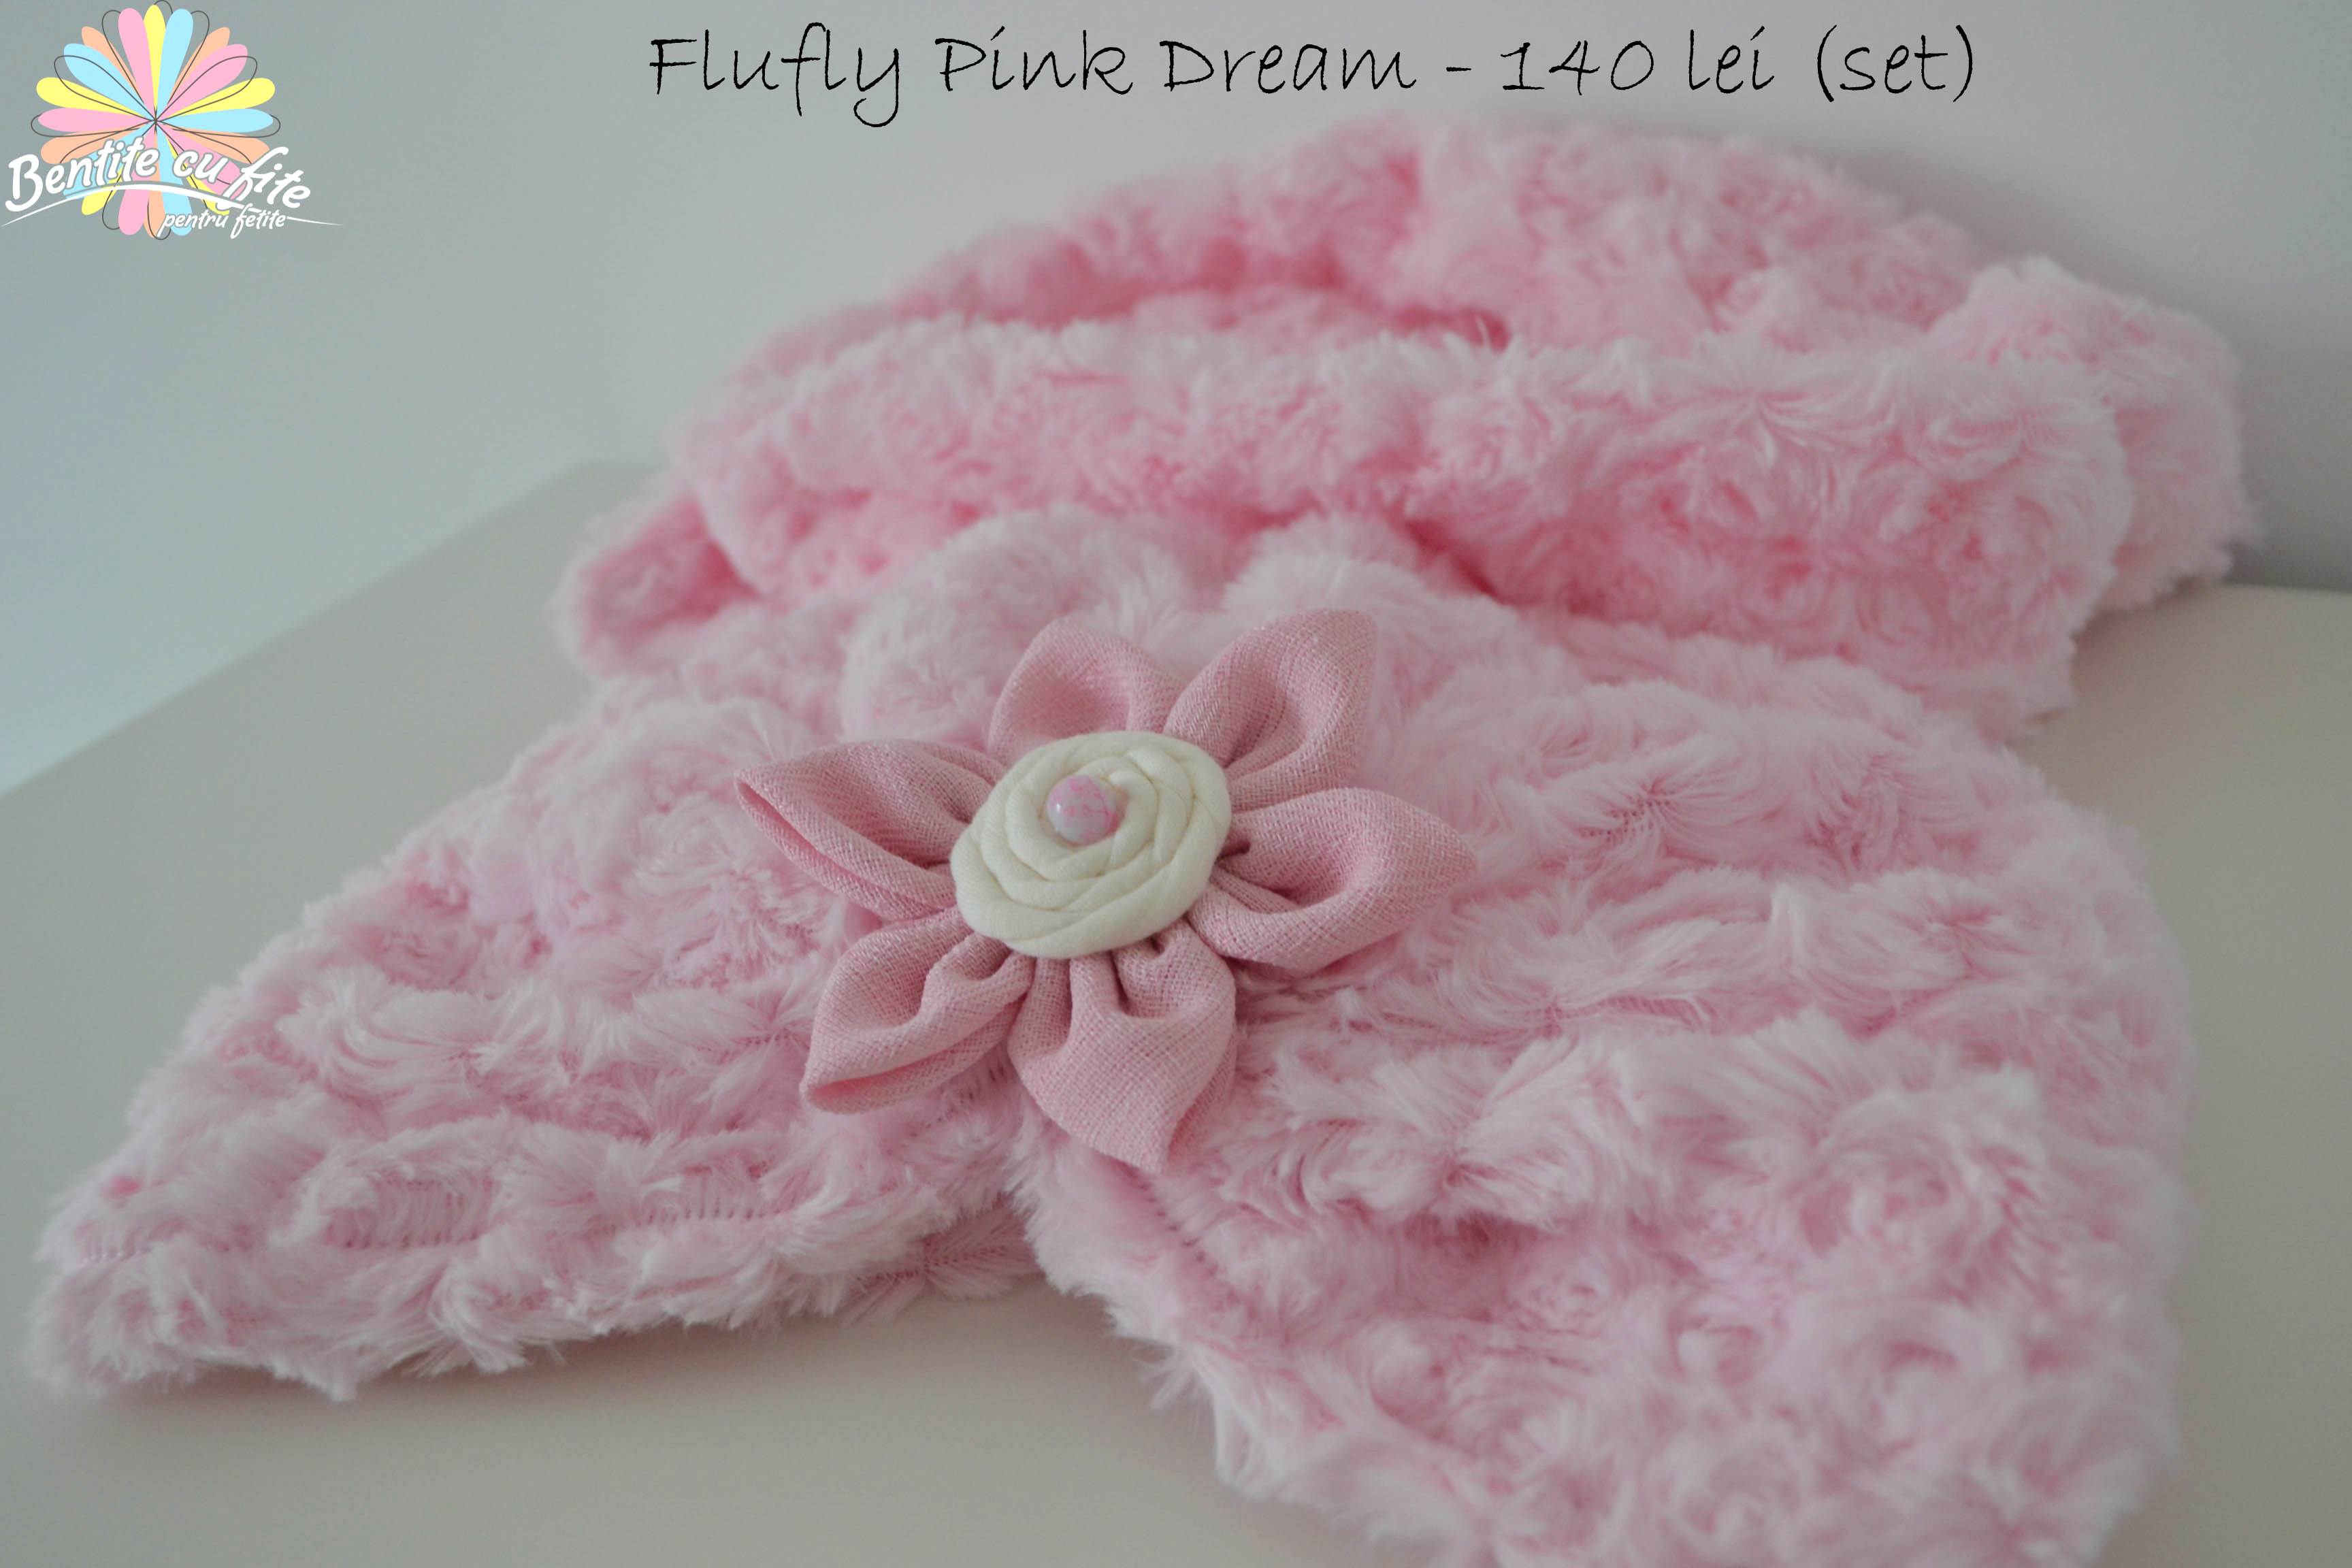 Flufly Pink Dream